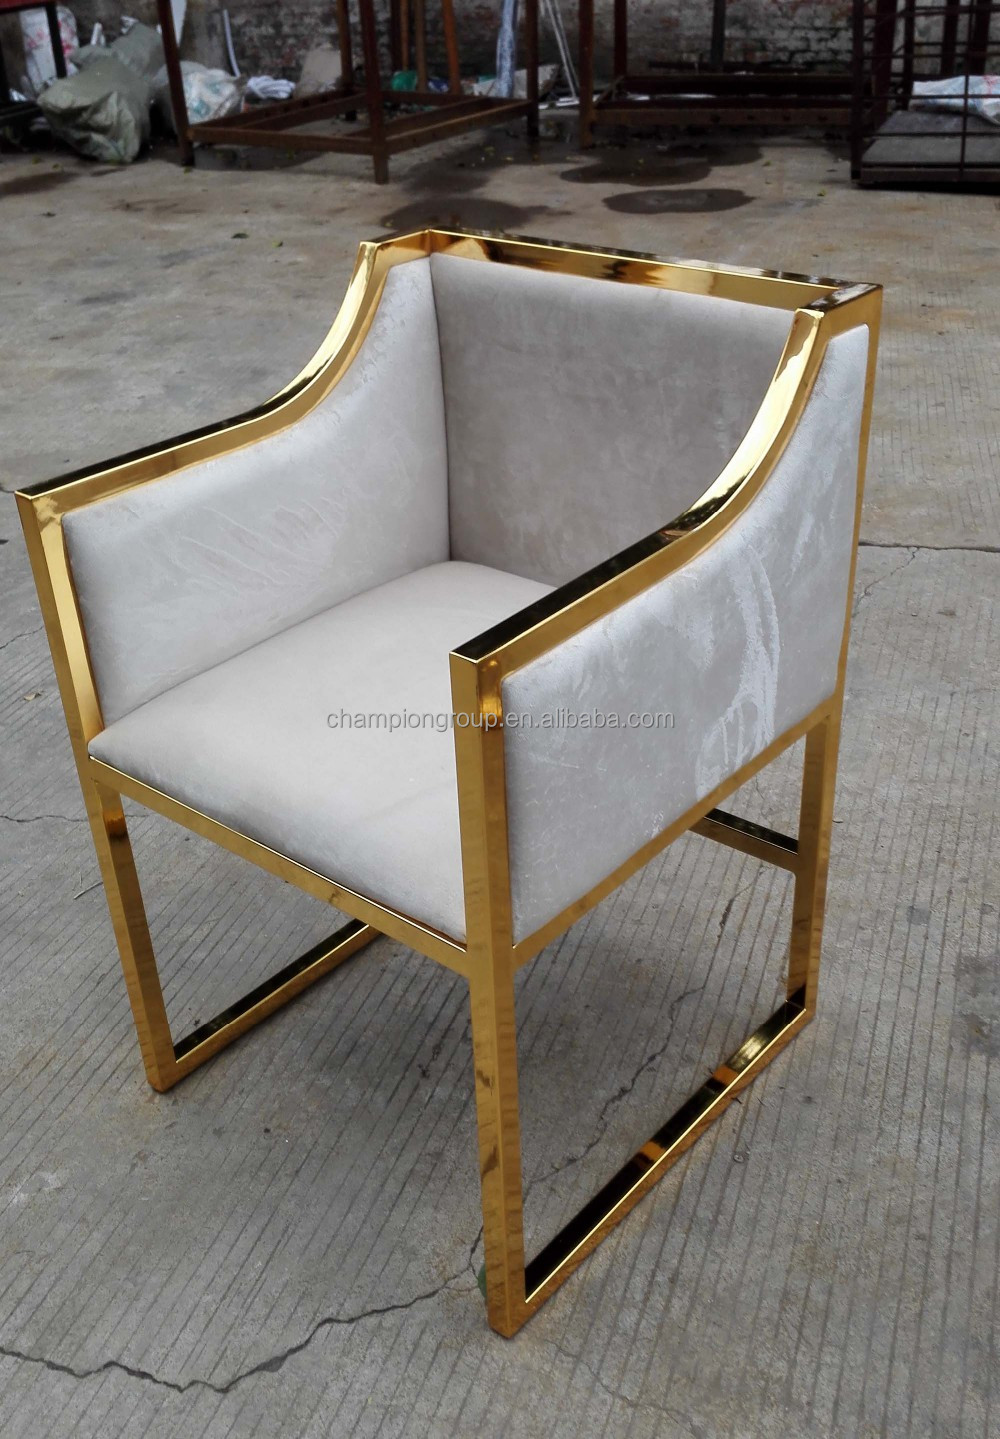 stainless steel gold fabric hotel arm chair